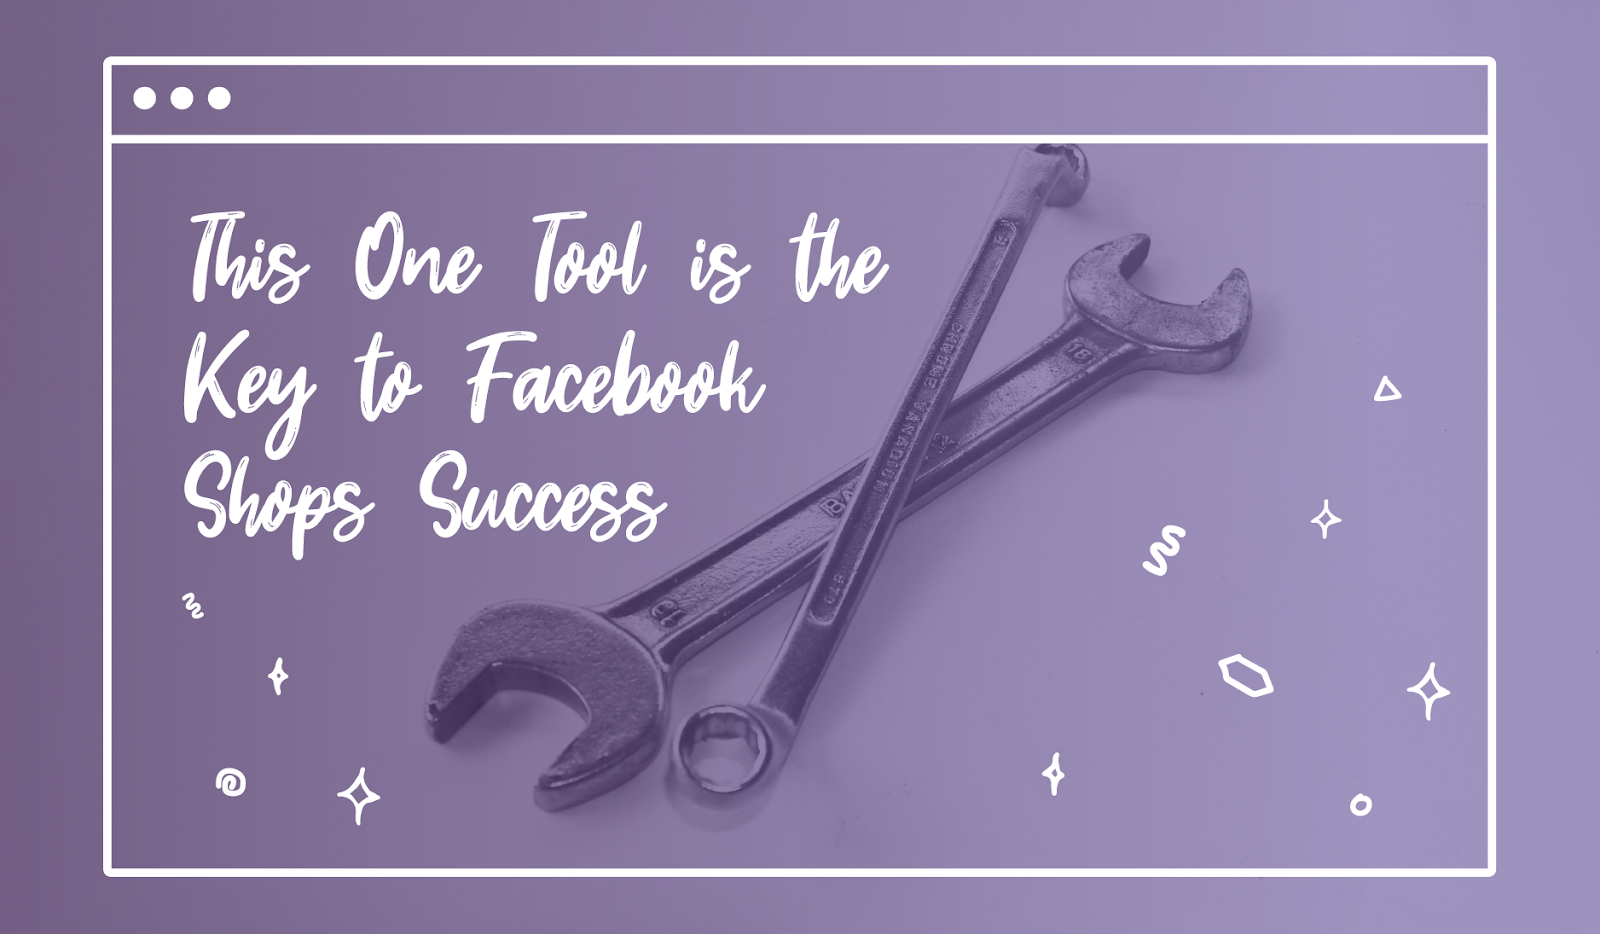 This One Tool is the Key to Facebook Shops Success